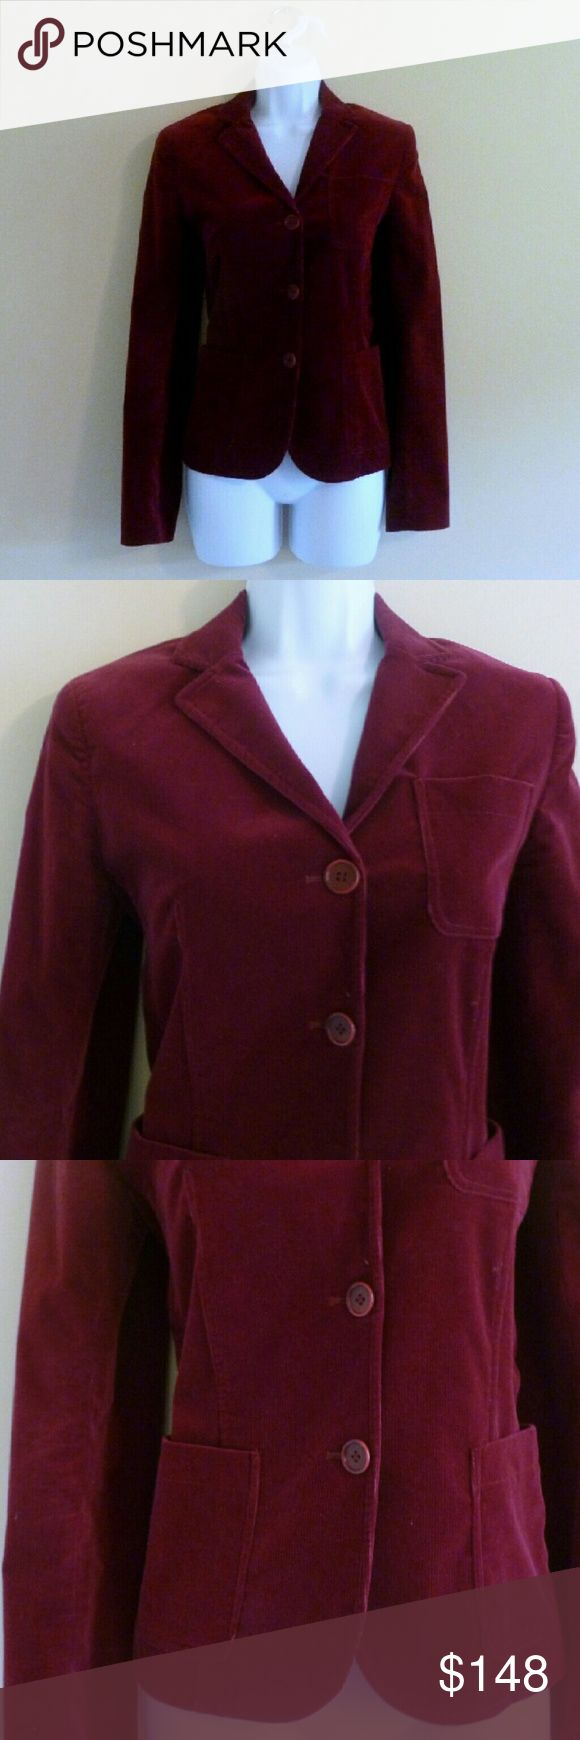 "(315) Theory Corduroy Burgundy Blazer - Size S Warm and well-tailored blazer from fine label Theory. This jacket fits so cute, and is so touchable and smart. Pockets and three-button closure. Vintage feel. Beautiful with a boho top and long statement necklace, or go preppy with a layered cami and button-down blouse. In excellent condition.  Bust - 34"" Waist - 32"" Length - 23"" Label - Theory Size - 4, fits like a small (PLEASE CHECK MEASUREMENTS) Materials - Cotton, lycra  Color may vary…"